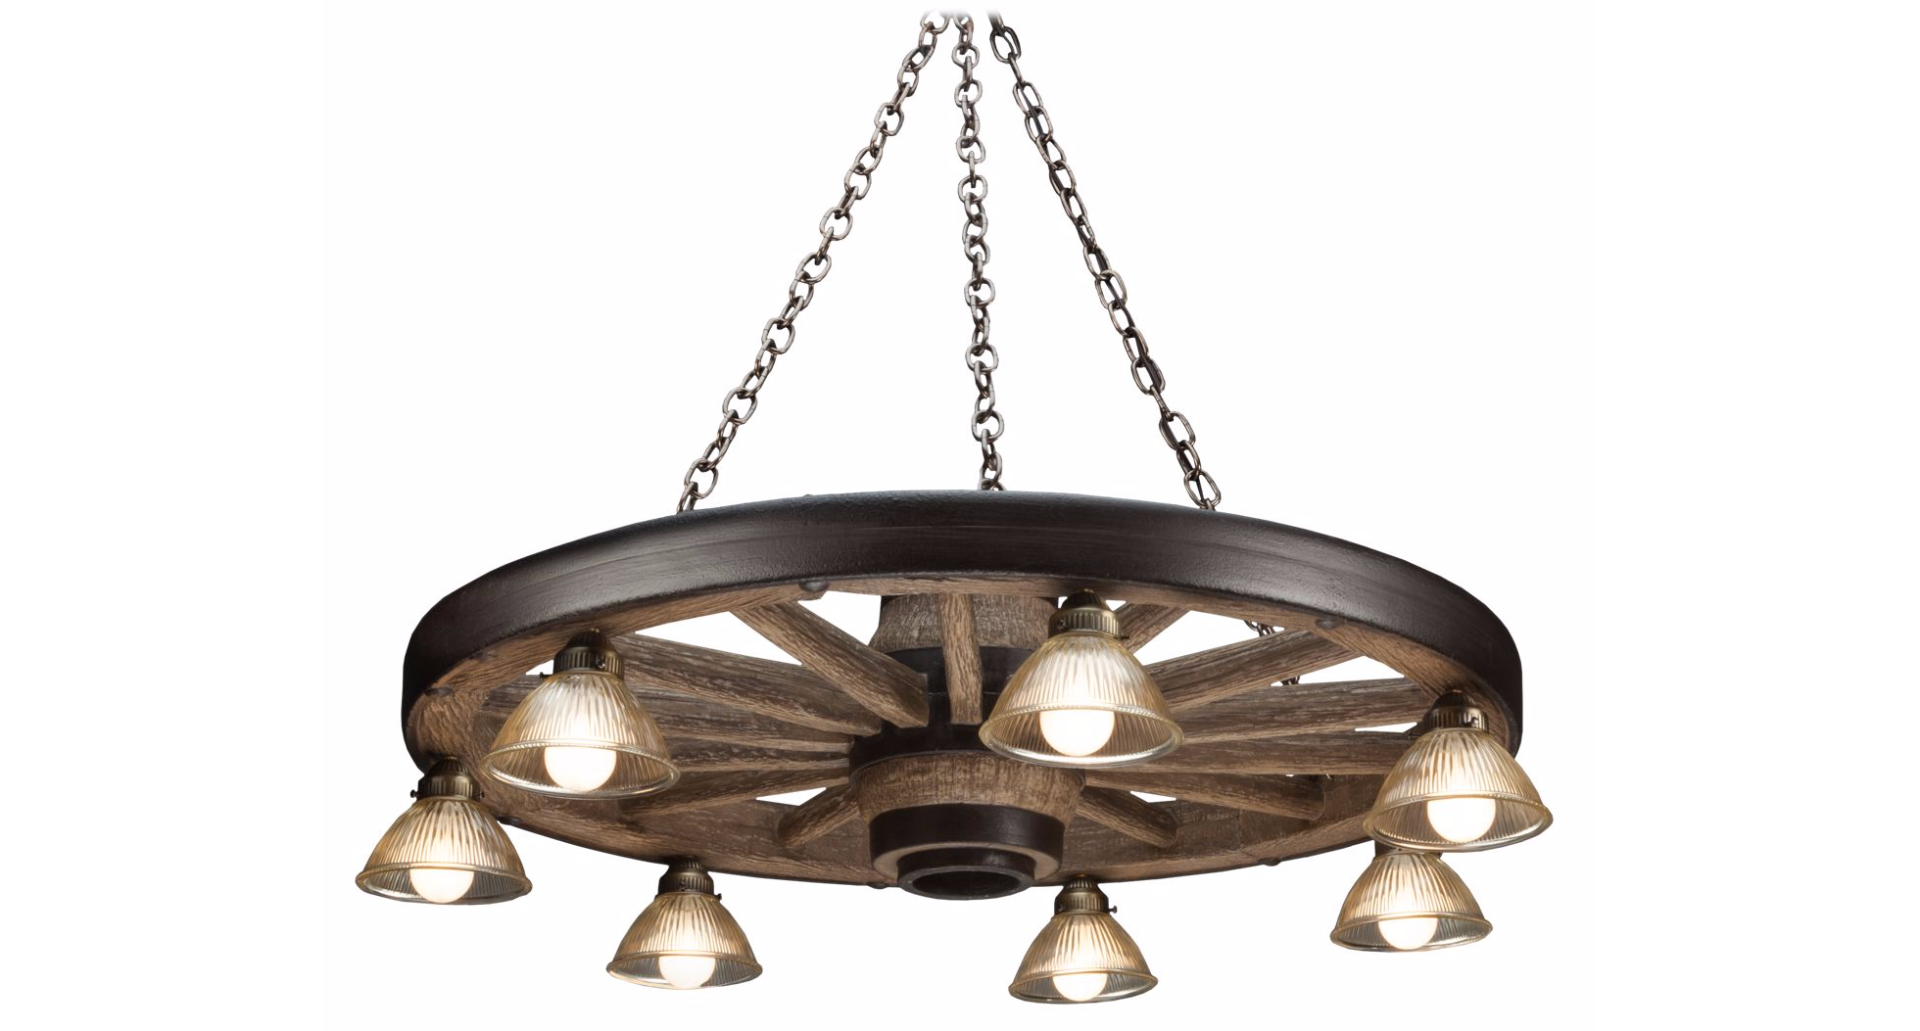 Wagon Wheel Chandelier with Downlights Cast Horn Designs